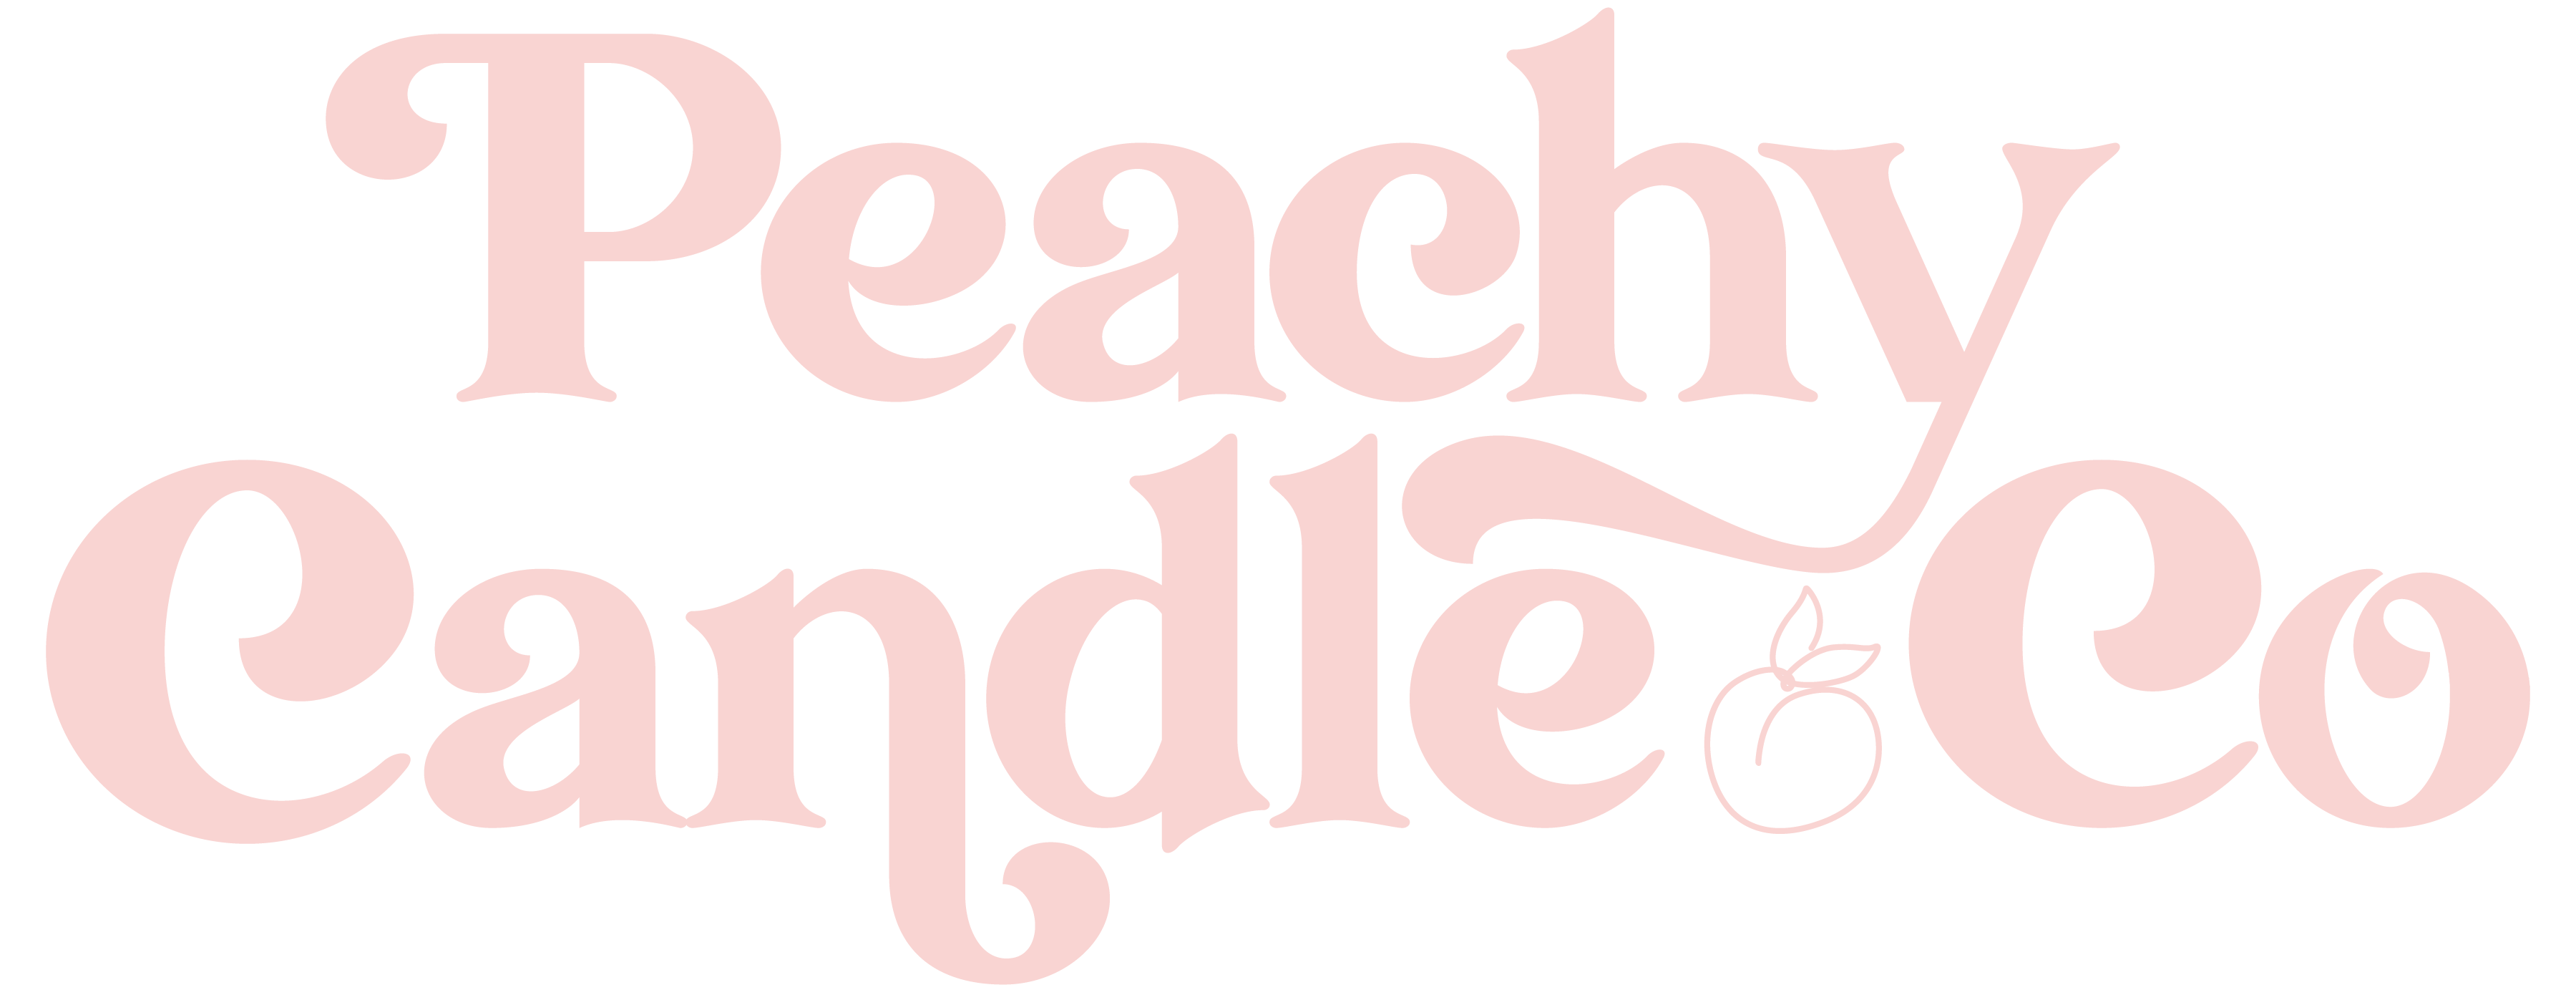 Peachy Candle Co Watermark-Candy_Alternate Logo